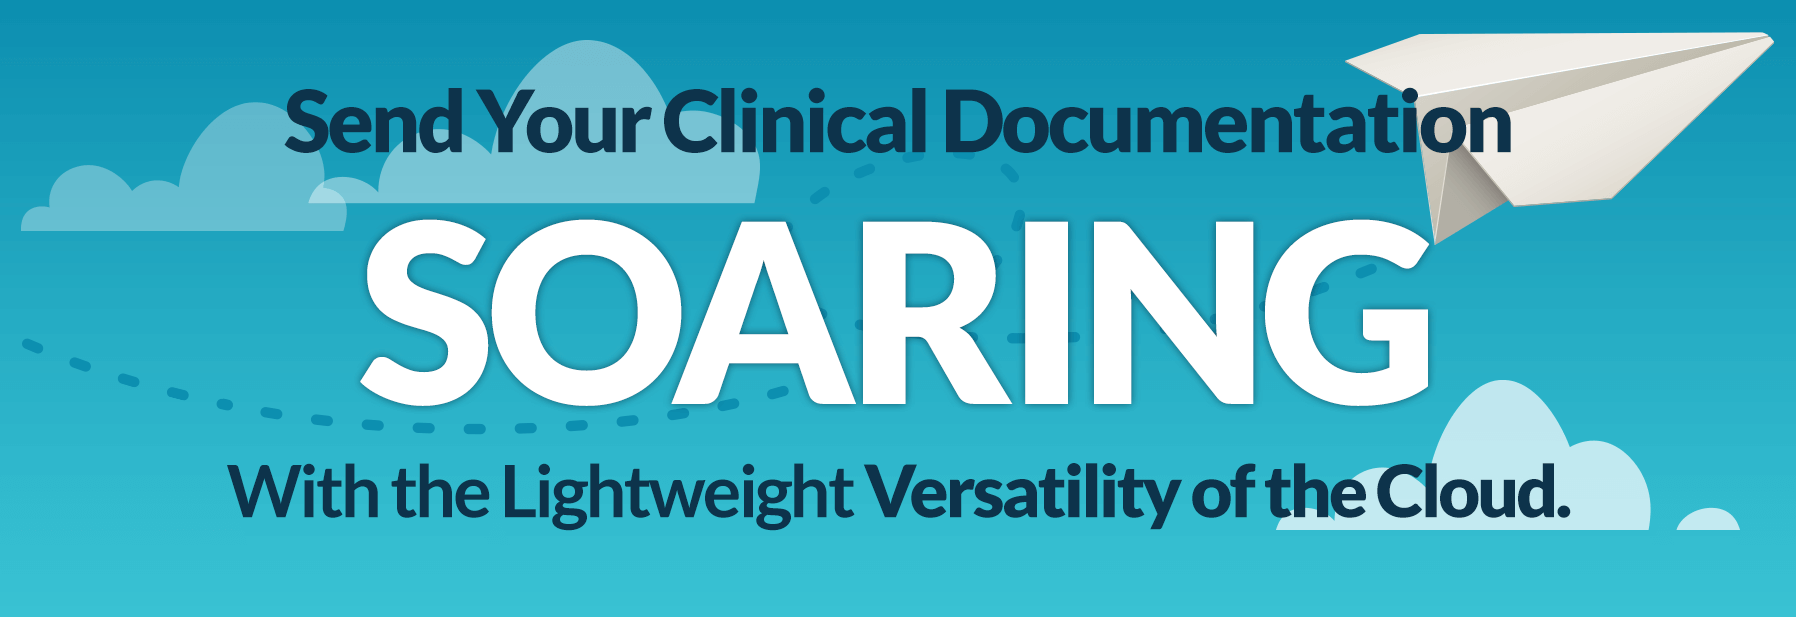 Send your clinical documentation soaring with the lightweight versatility of the cloud.